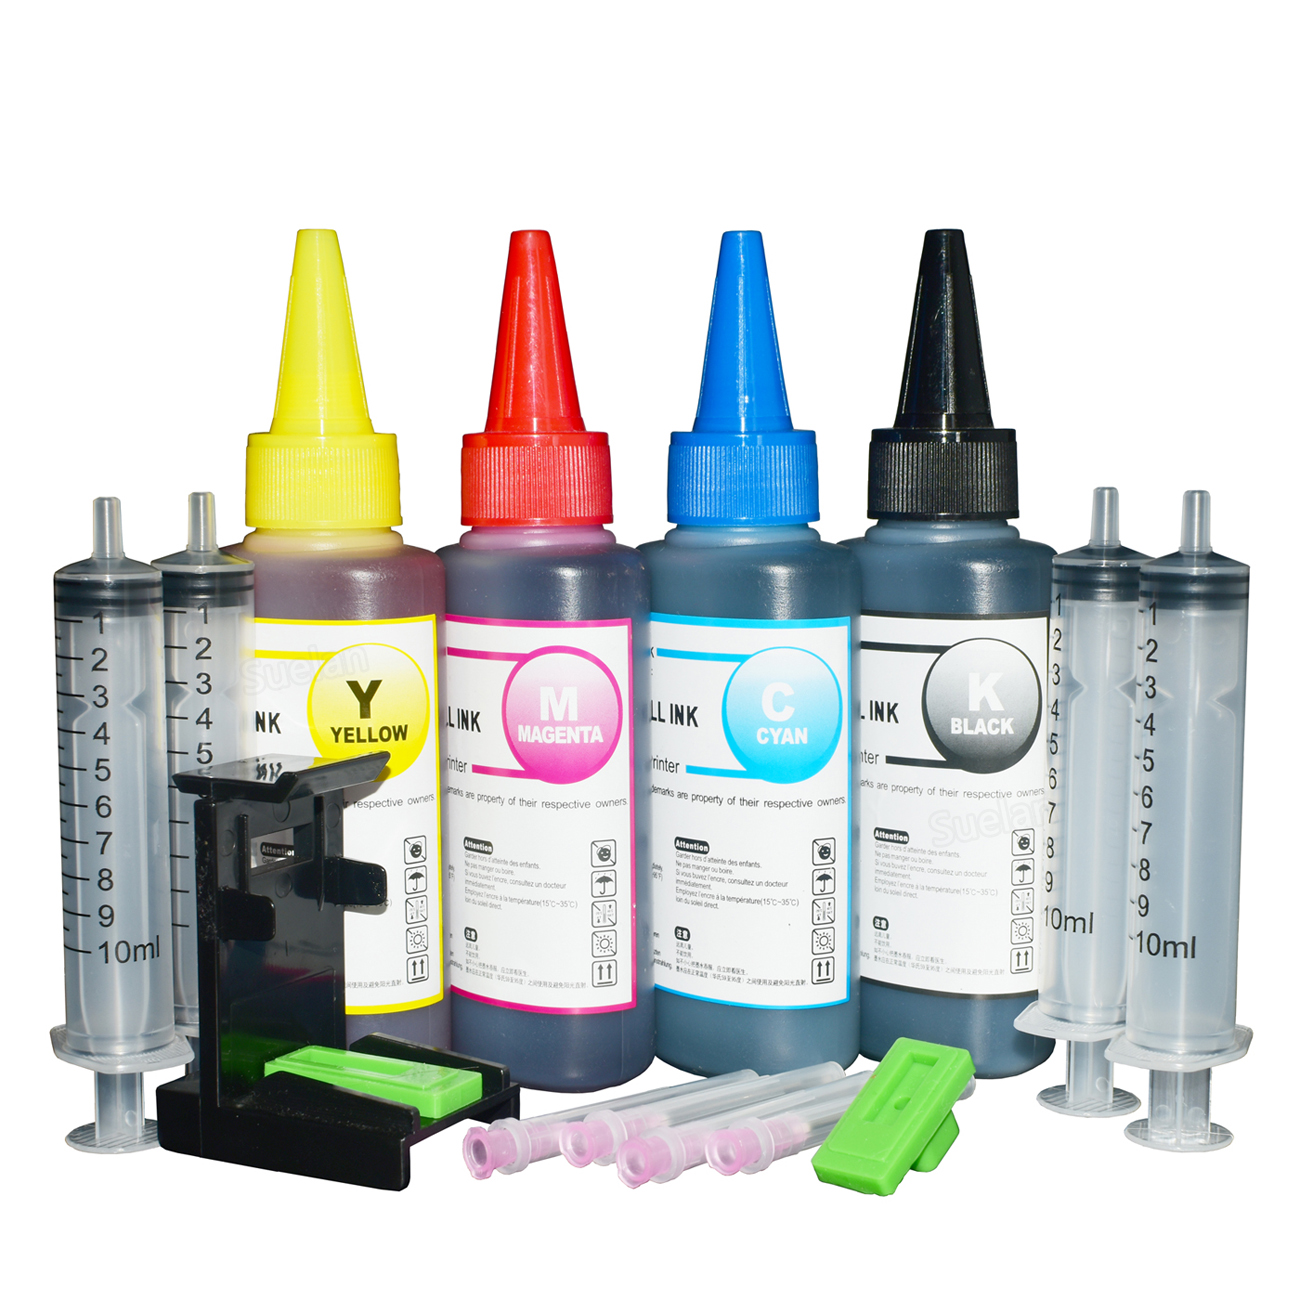 Printer Ink for <font><b>Hp</b></font> 123 Ink Cartridge <font><b>Hp</b></font> 121 HP122 <font><b>HP</b></font> 650 <font><b>HP</b></font> 129 <font><b>HP</b></font> 21 22 <font><b>hp</b></font> 140 for <font><b>hp</b></font> deskjet 2130 2620 <font><b>HP</b></font> <font><b>652</b></font> <font><b>Refill</b></font> Ink 4x100 image